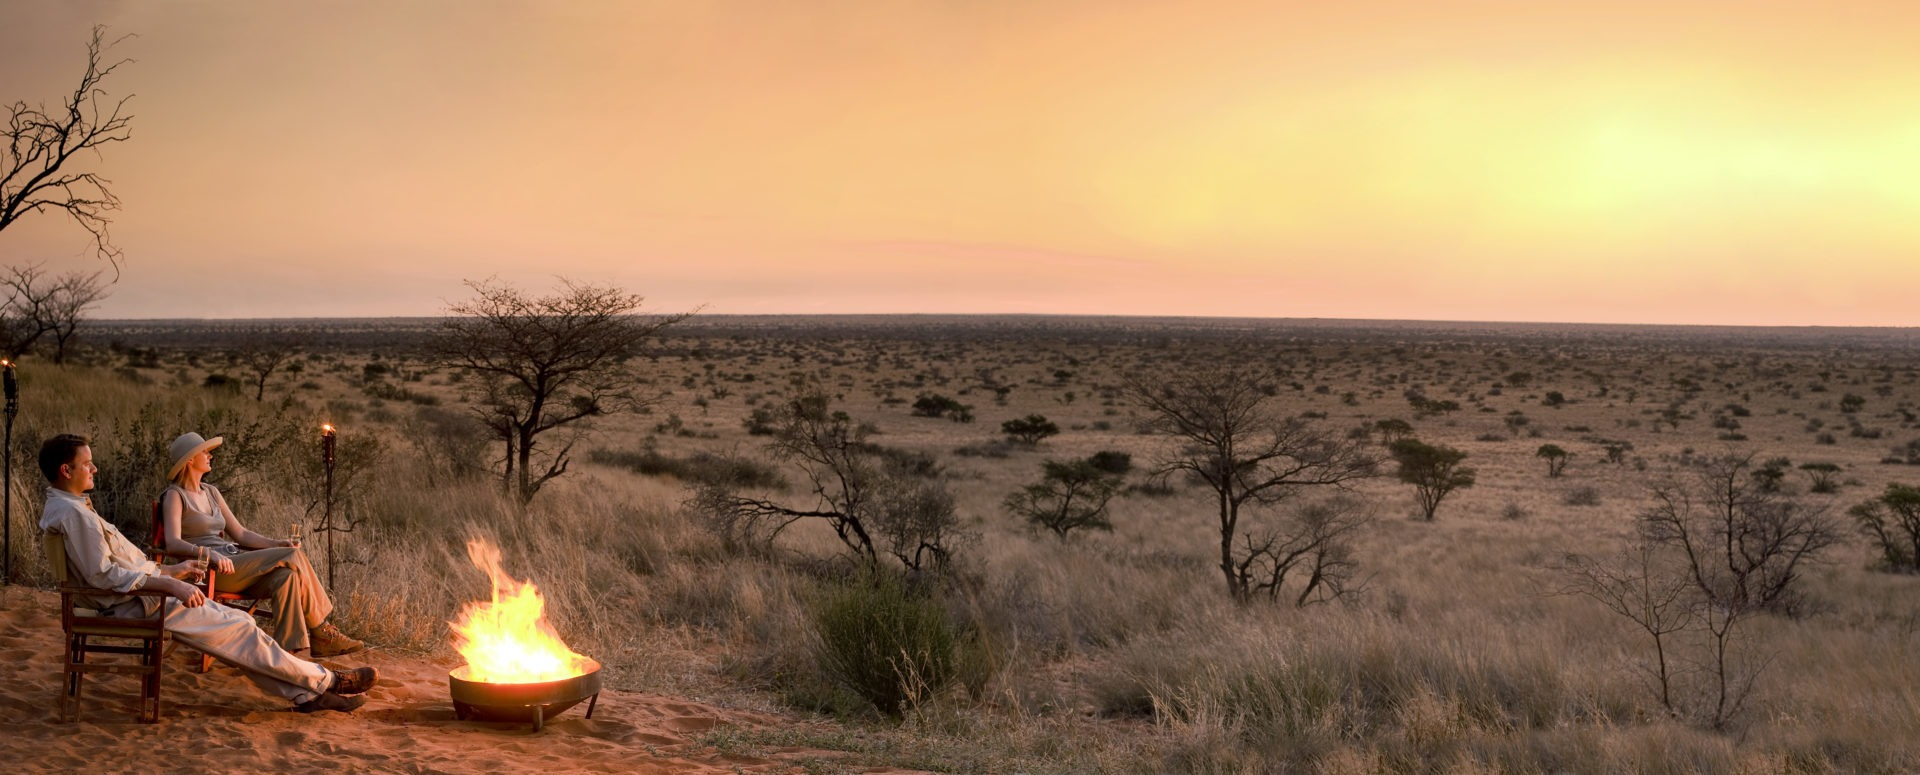 tswalu kalahari south africa fireplace view